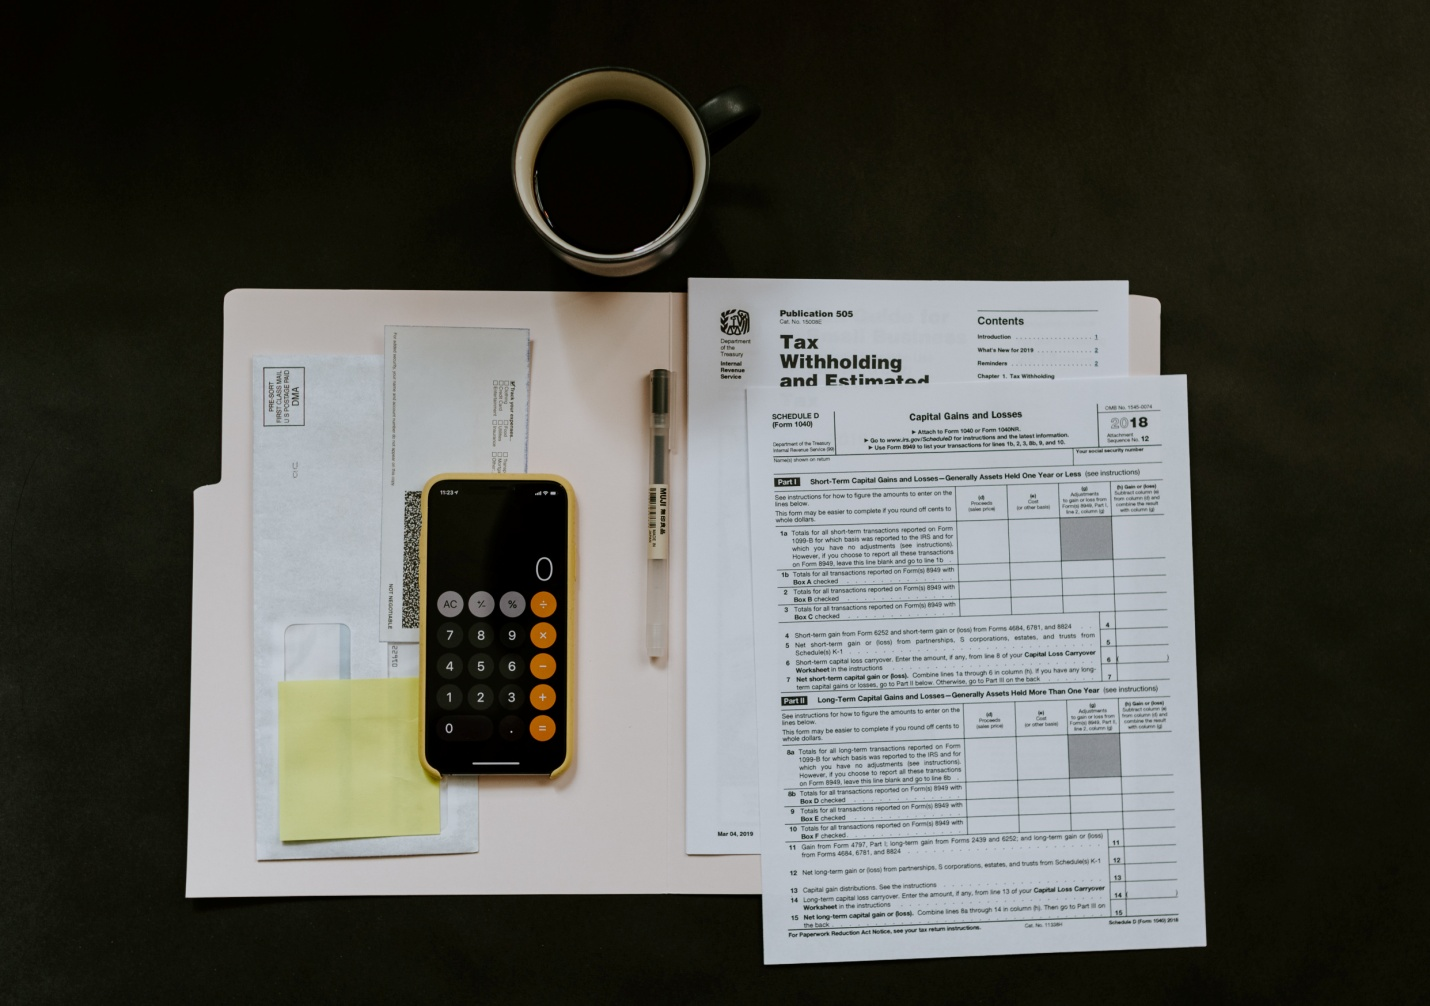 smartphone near ballpoint pen, tax withholding certificate on top of white folder